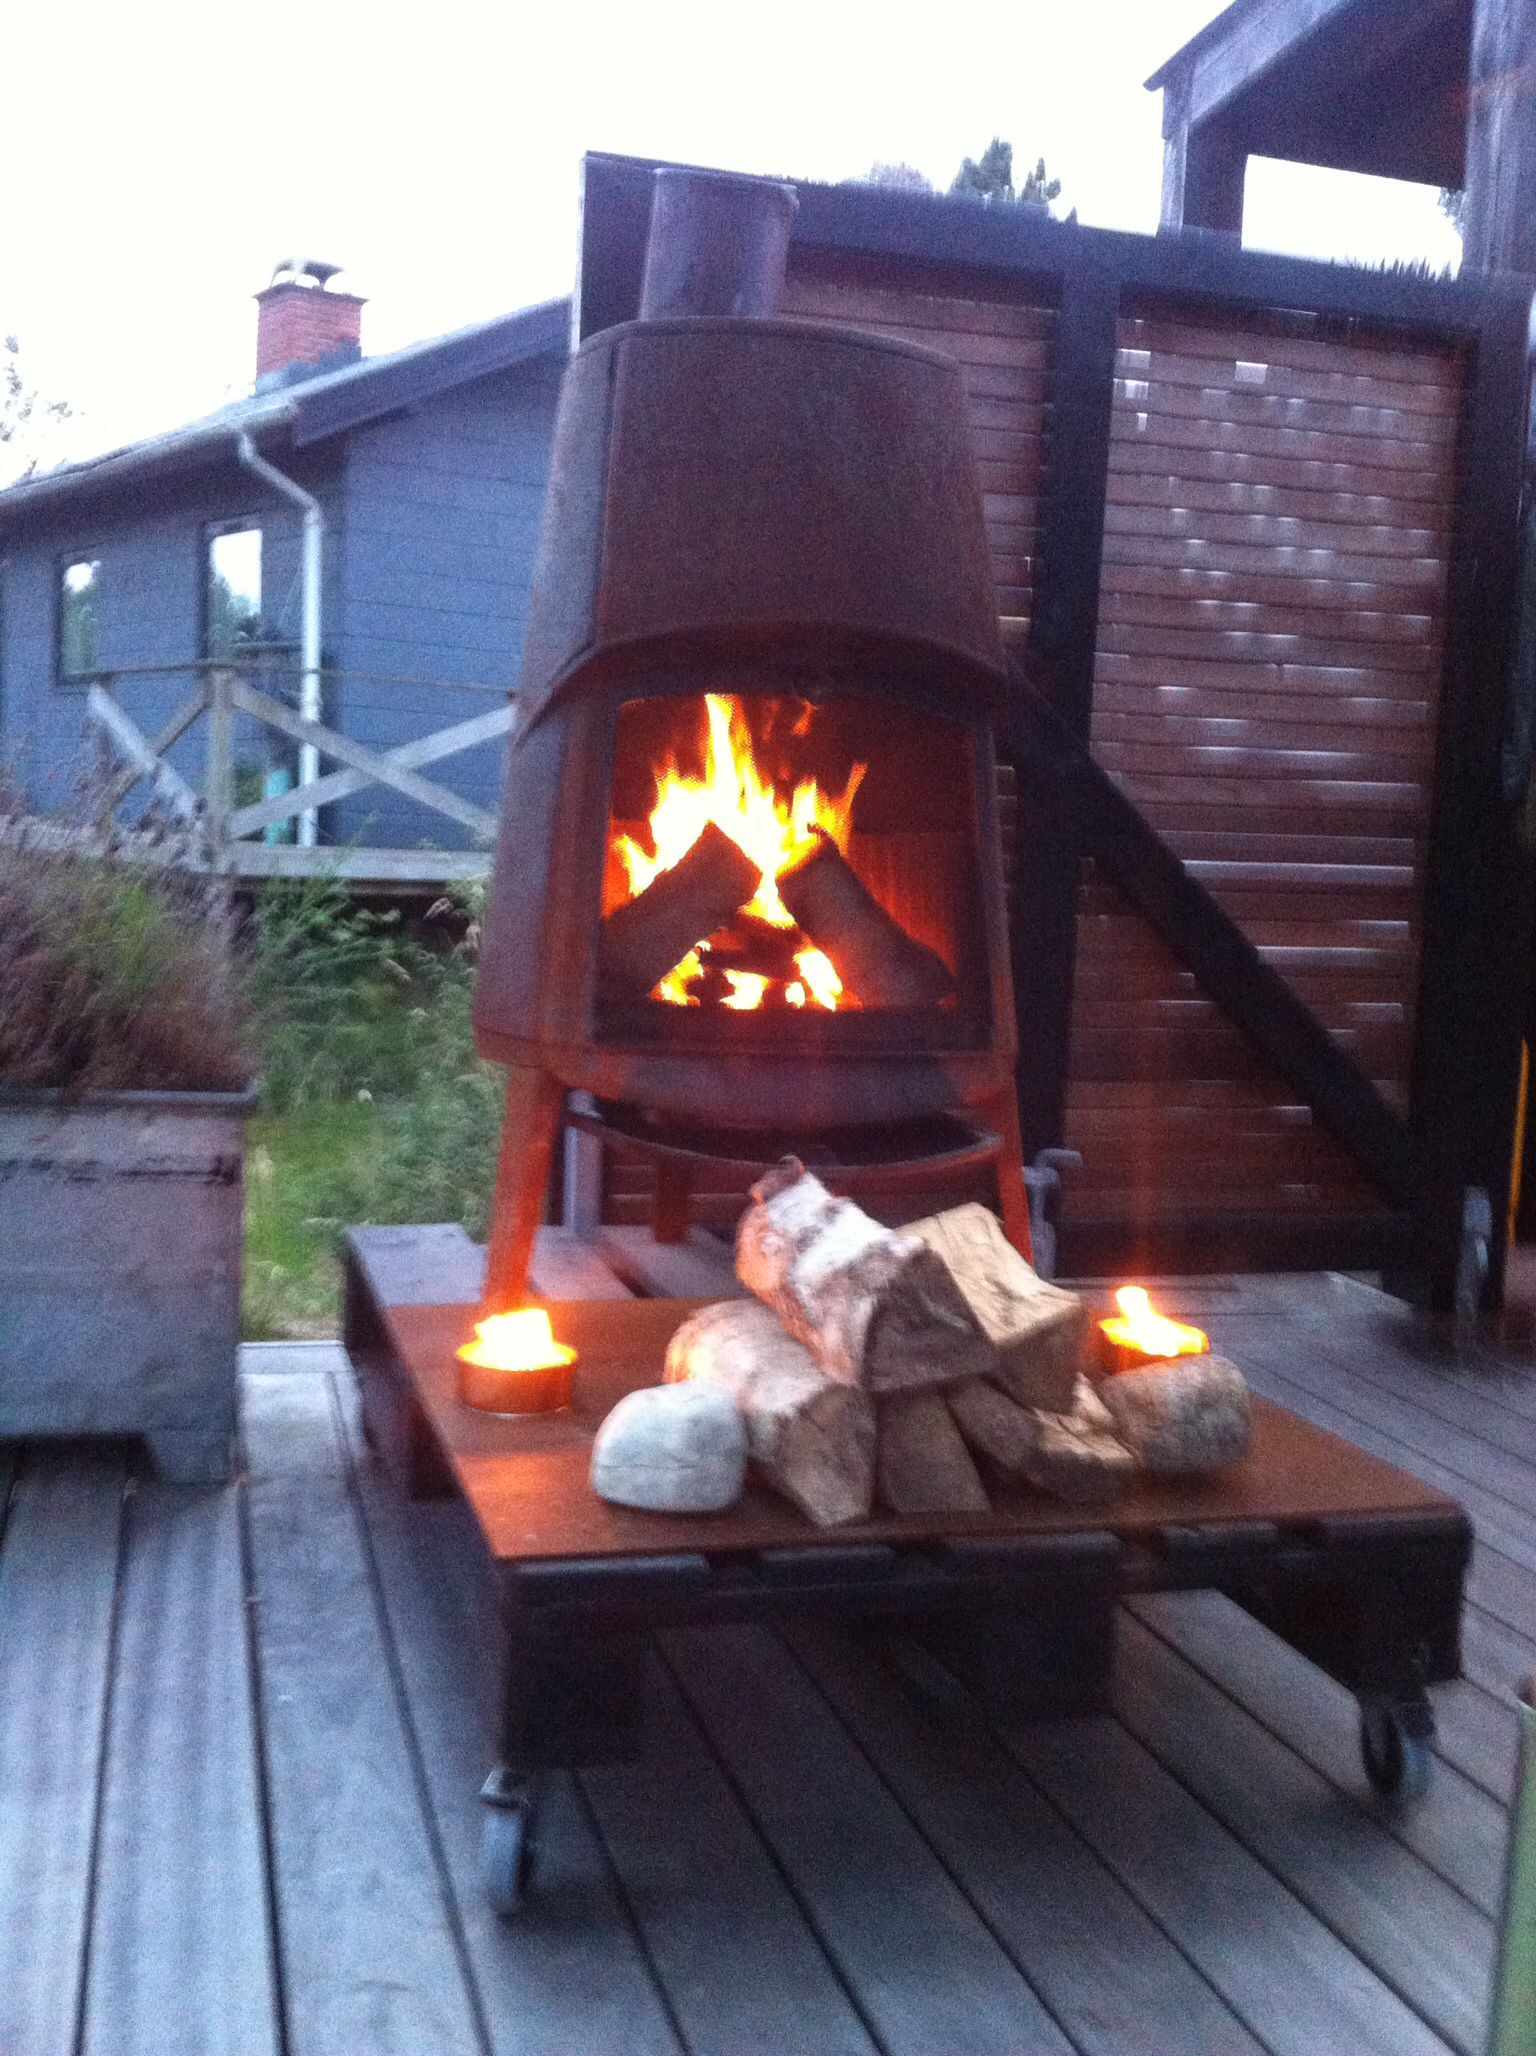 mobil fireplace by 1 1rum design sommerhus 1 1rum design contact